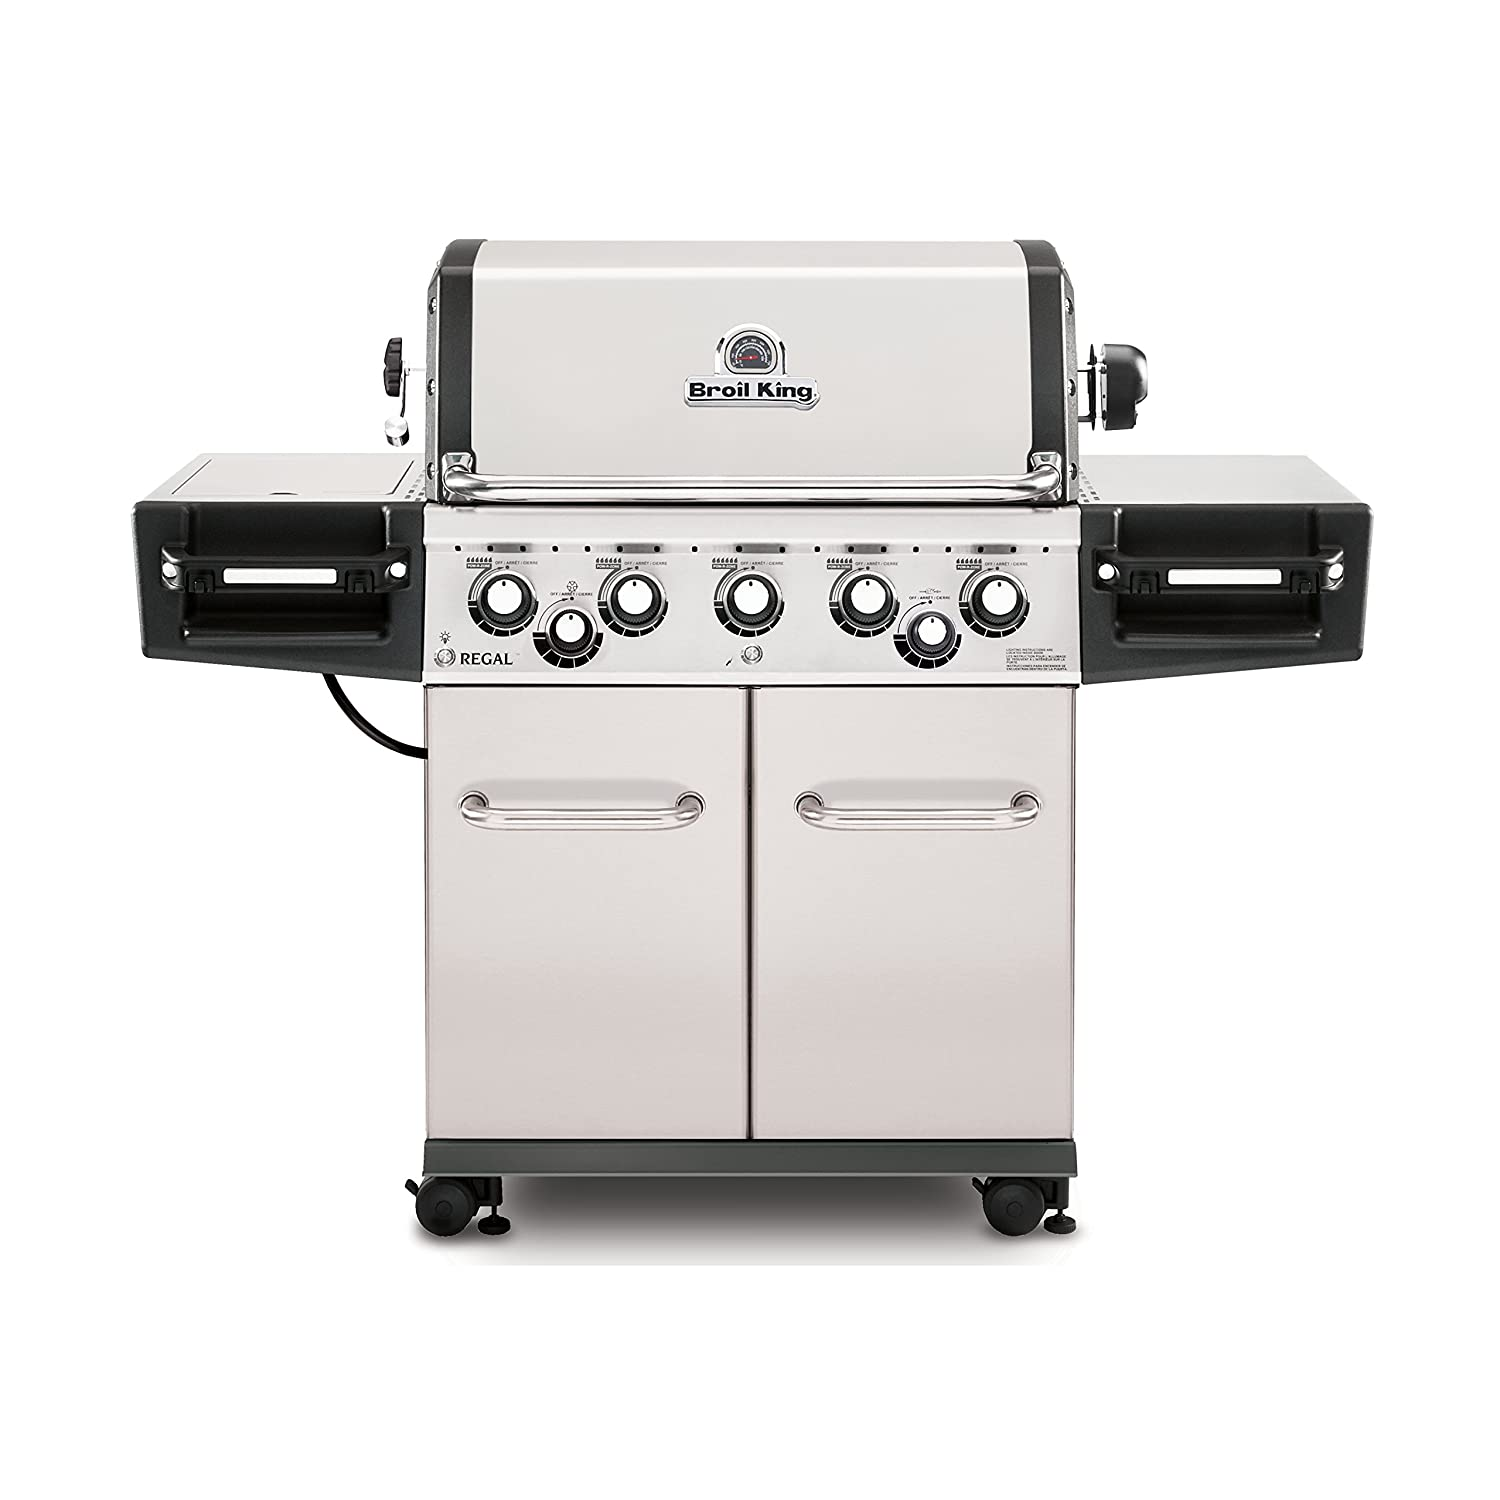 Broil King 958347 Natural Gas Grill Black Friday Deal